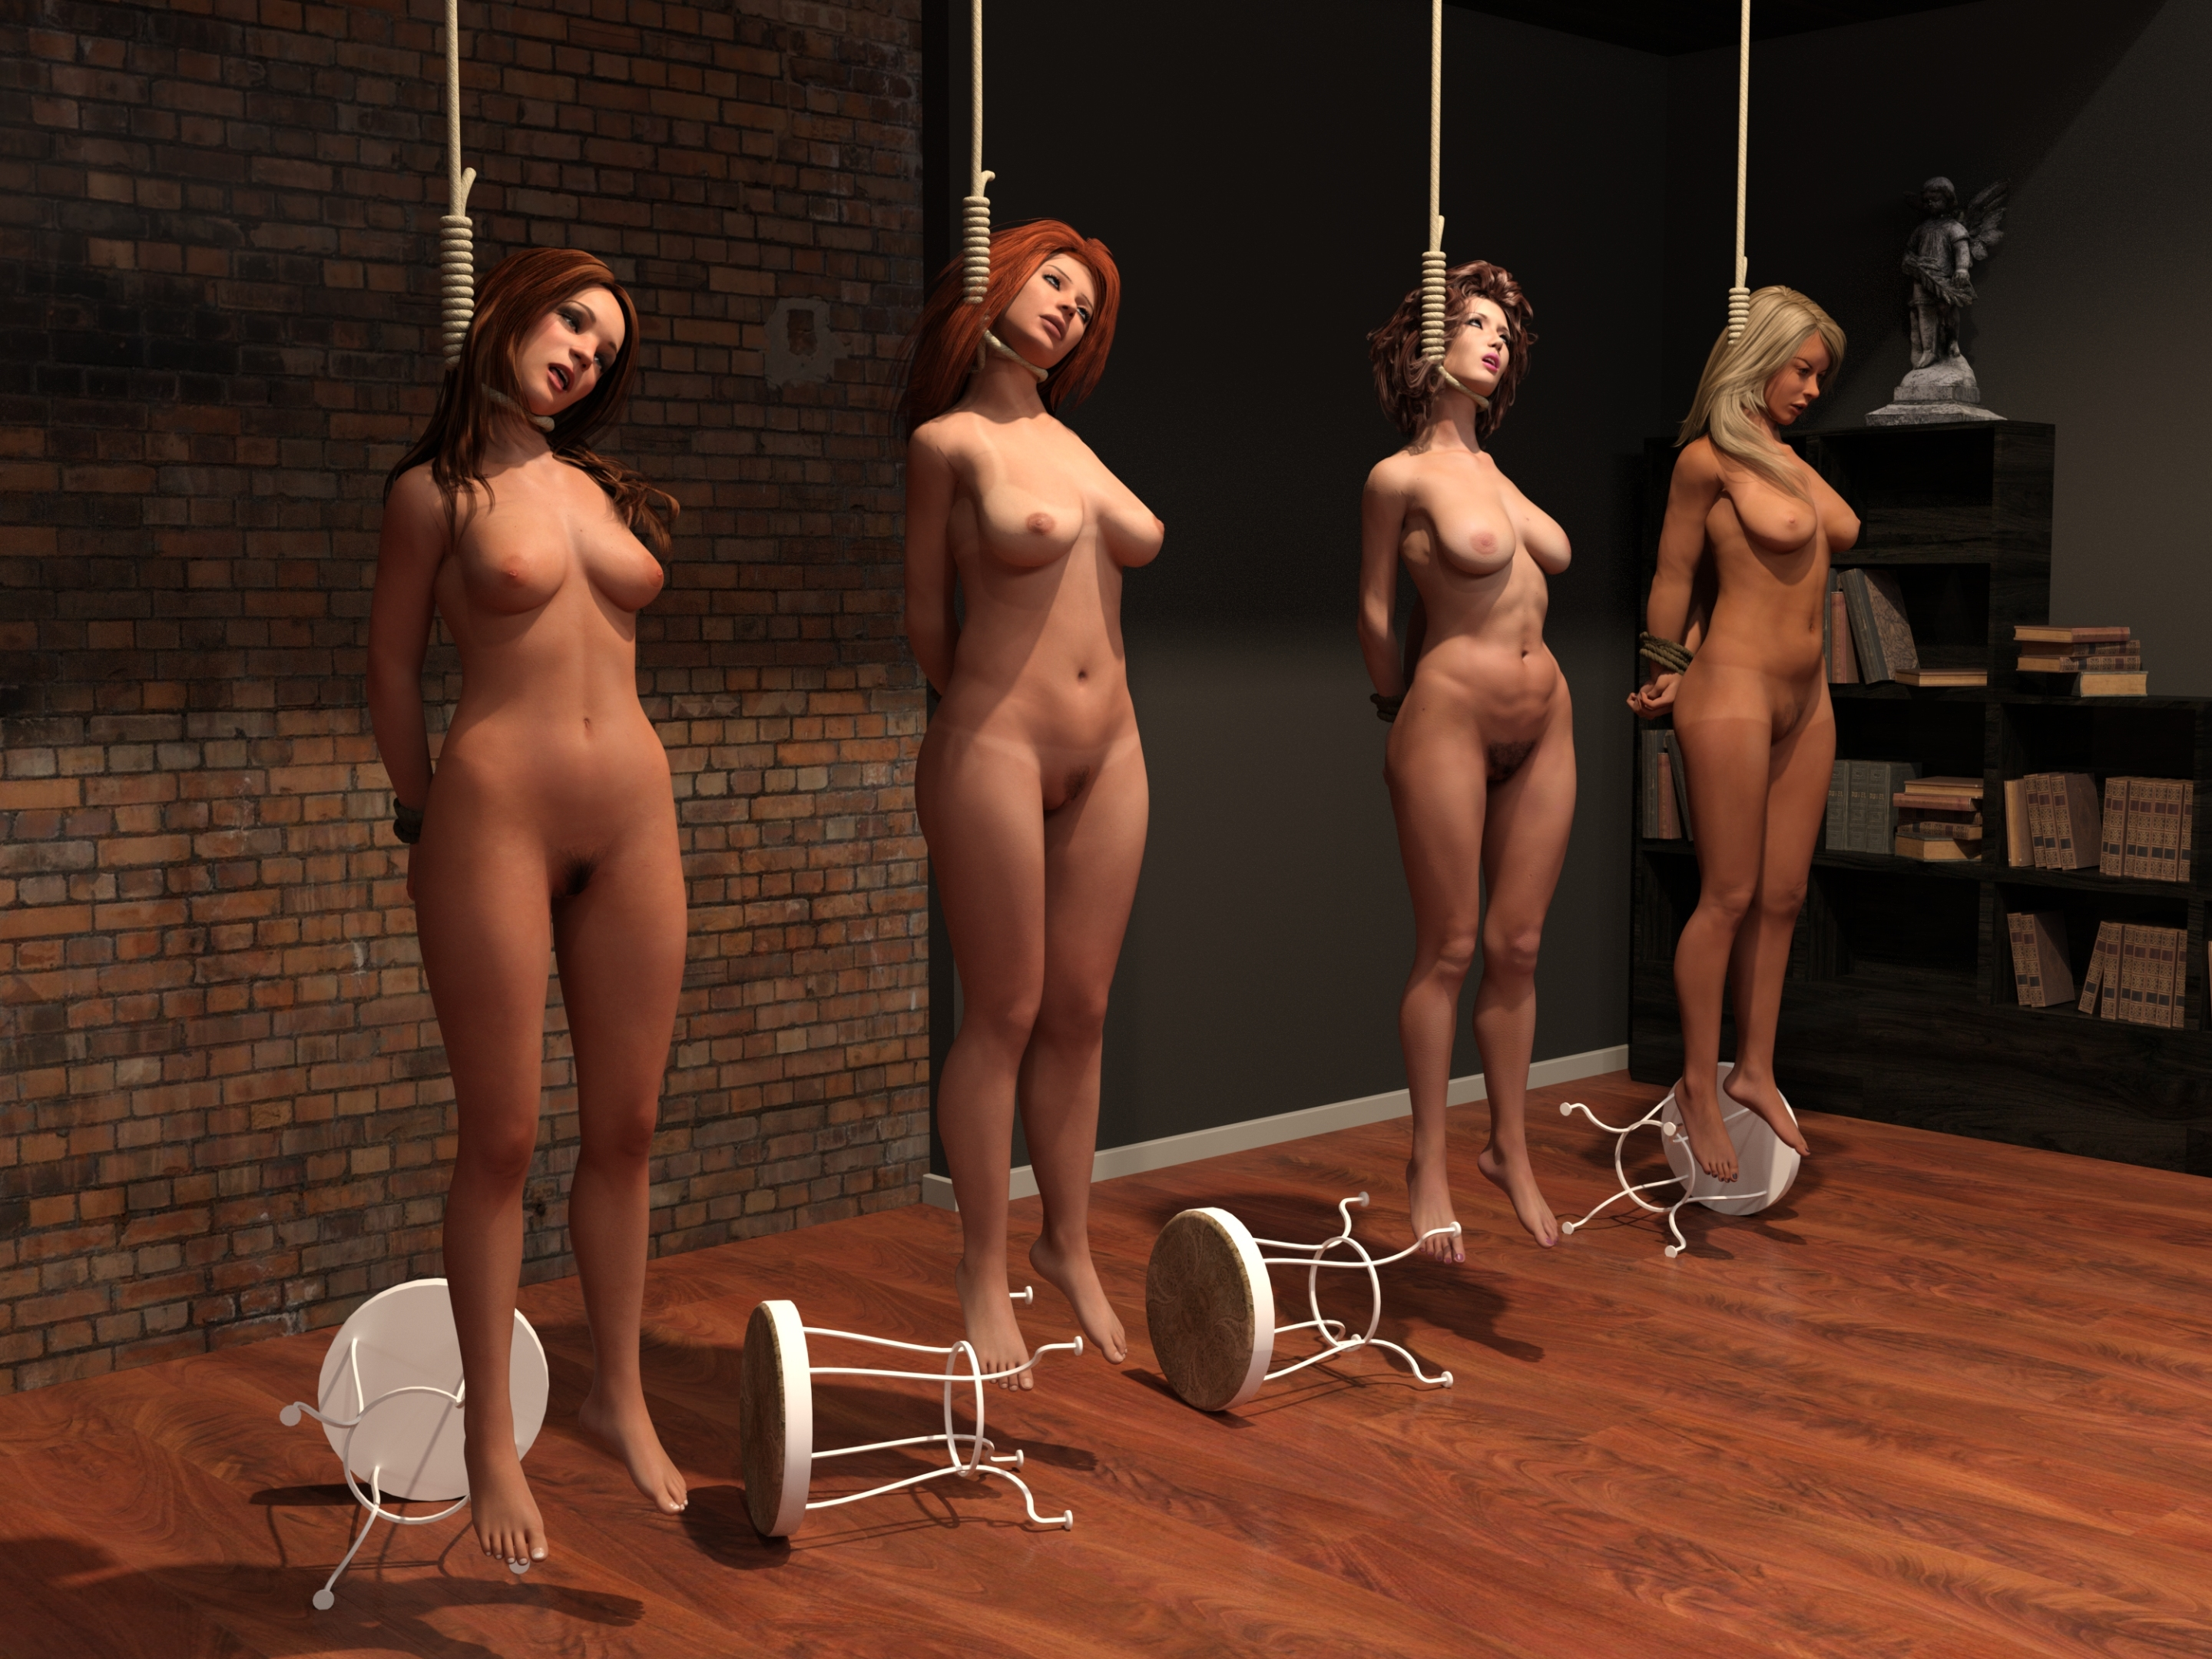 images-of-girls-naked-girls-hanging-from-the-rings-sex-with-there-dick